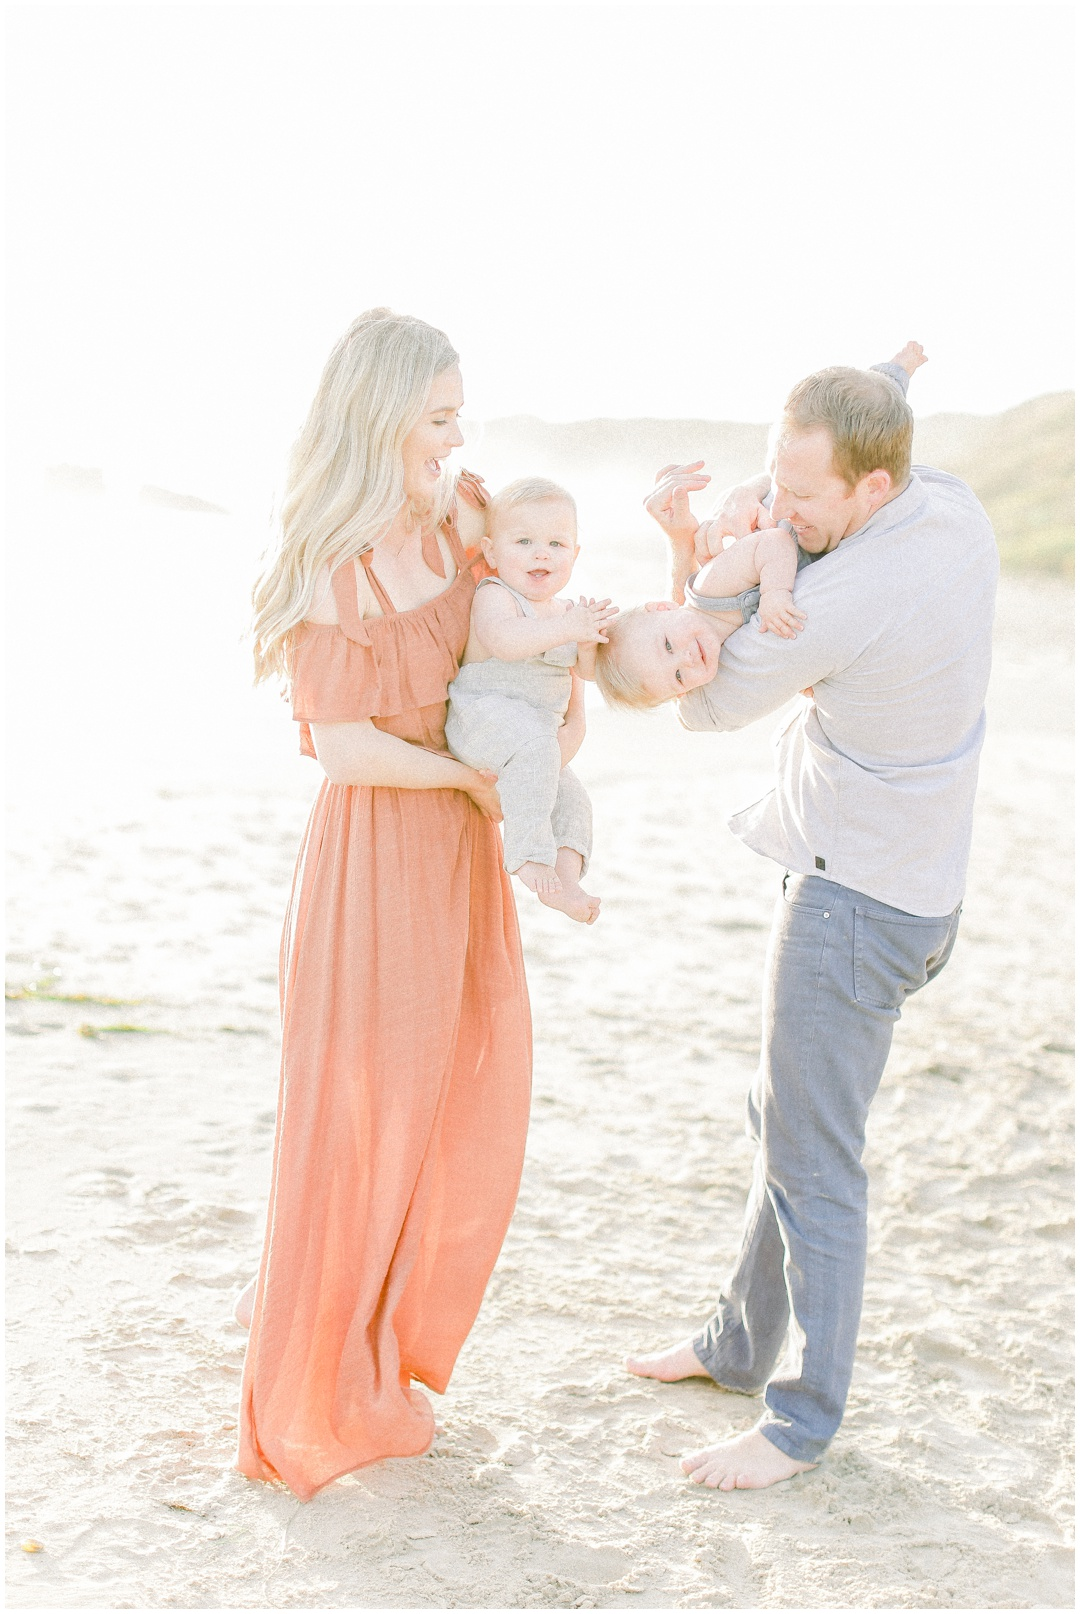 Newport_Beach_Newborn_Light_Airy_Natural_Photographer_Newport_Beach_Photographer_Orange_County_Family_Photographer_Cori_Kleckner_Photography_Huntington_Beach_Photographer_Family_OC_Newborn_Kelly_Bandak_Nik_Bandak__3507.jpg